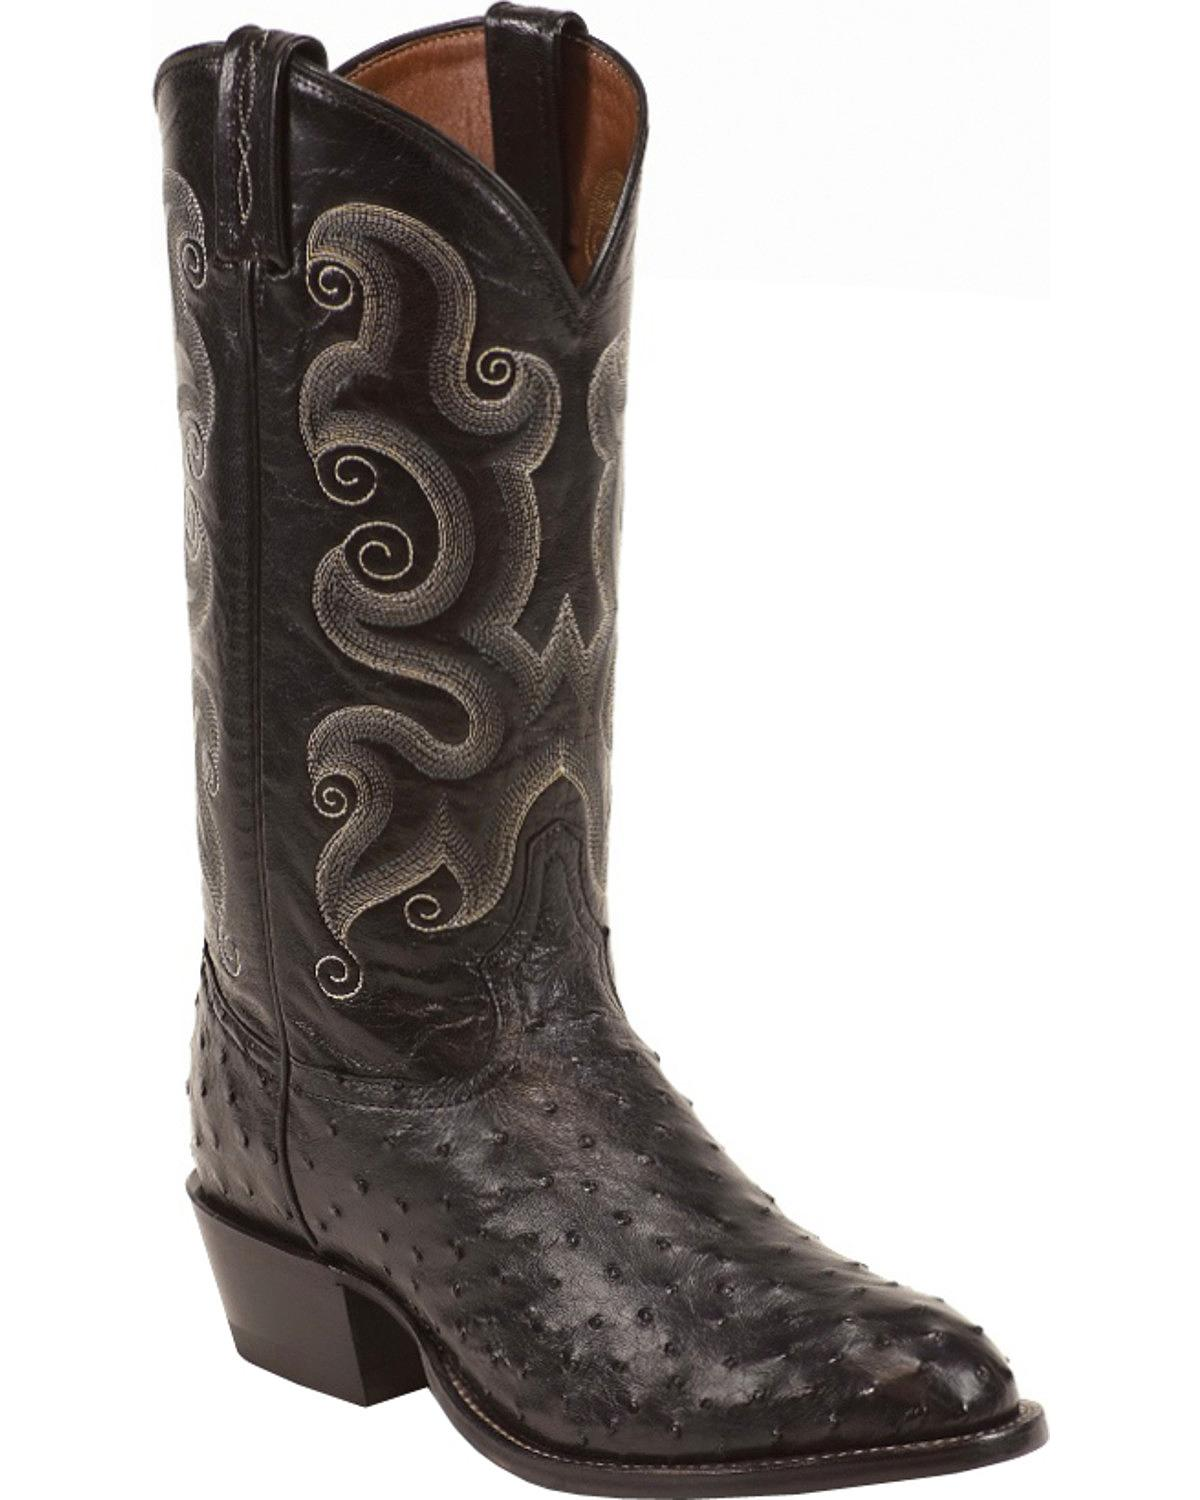 With over 3, styles and 2,, pairs of men's cowboy boots to pull from, saiholtiorgot.tk has one of the largest selections of western and cowboy boots, anywhere.